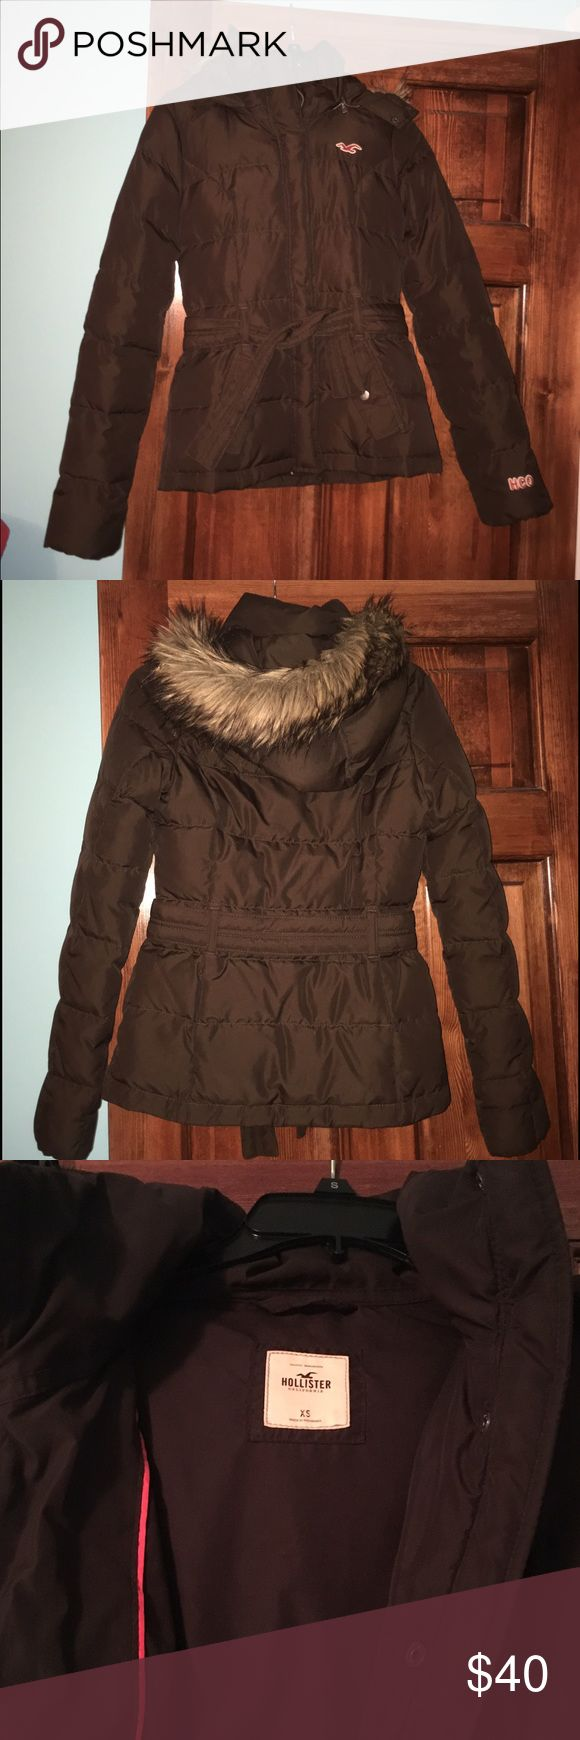 Brown Girls' Hollister Coat brown Hollister coat, great condition. size XS️❗️price can be negotiated❗️ Hollister Jackets & Coats Puffers